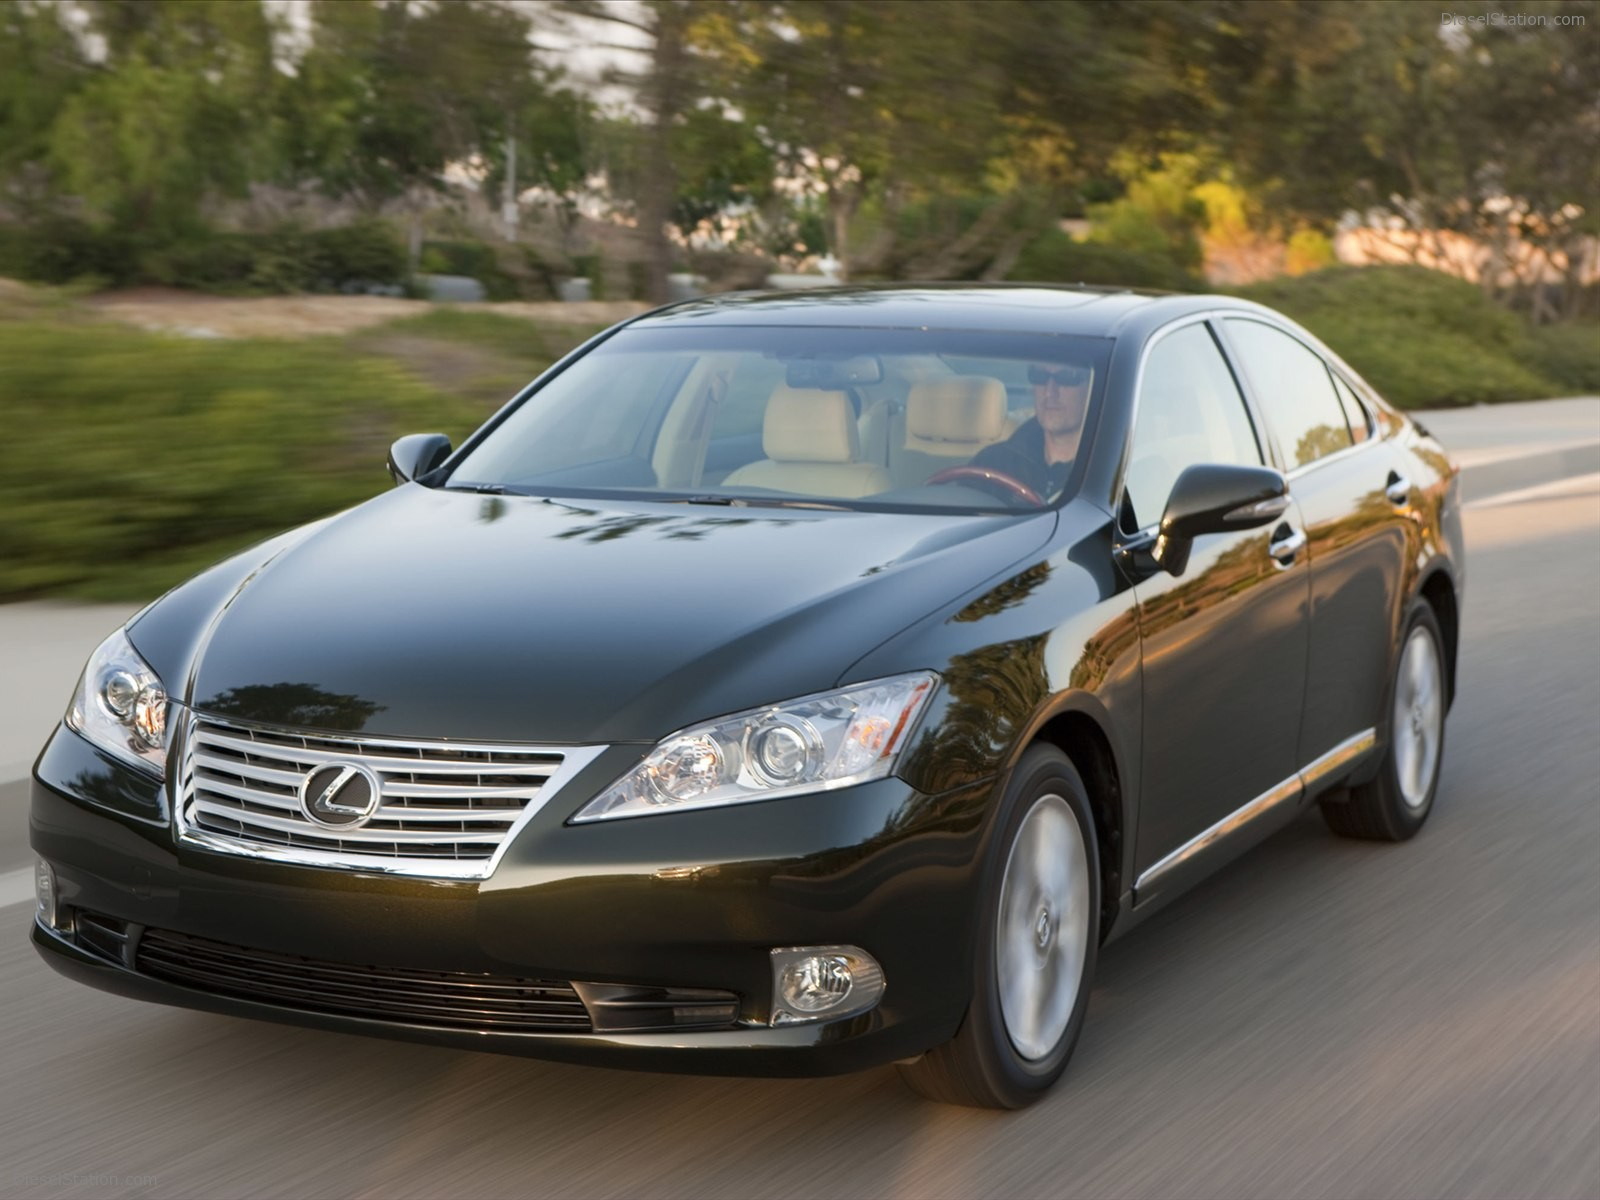 Lexus ES 350 2012 photo - 3